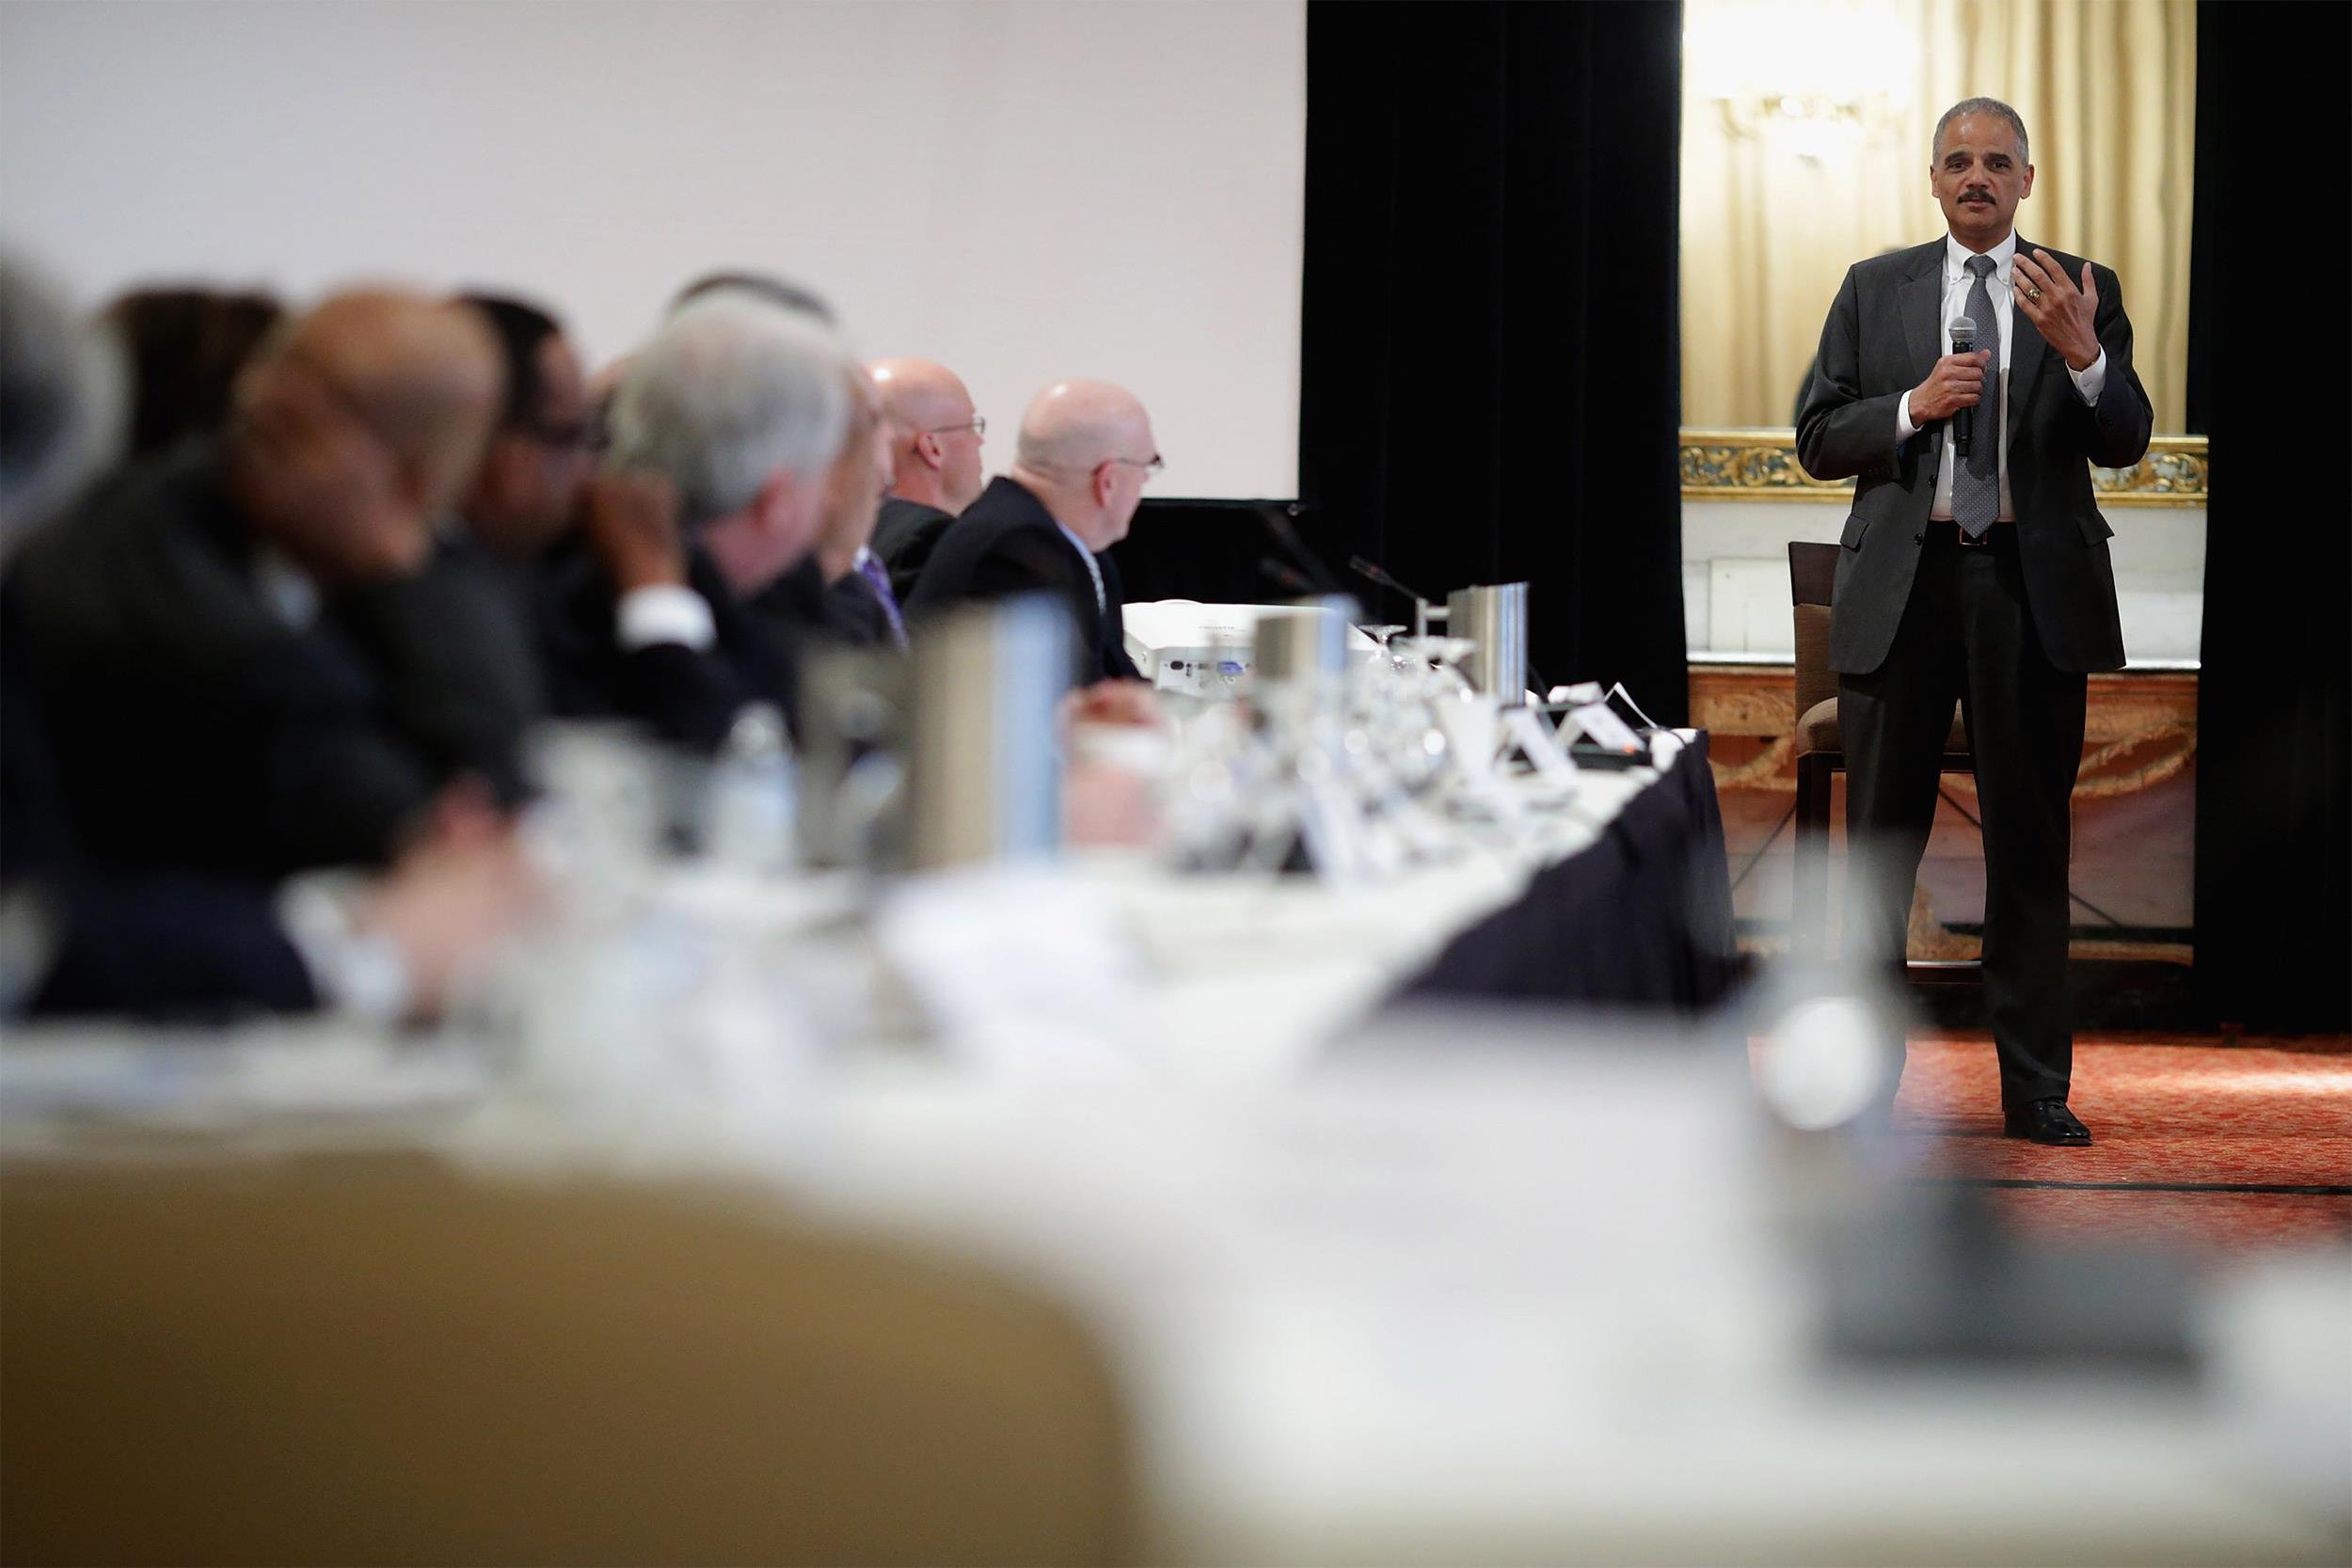 Image: United States Attorney General Eric Holder addresses the Police Executive Research Forum's National Summit at the Mayflower Hotel